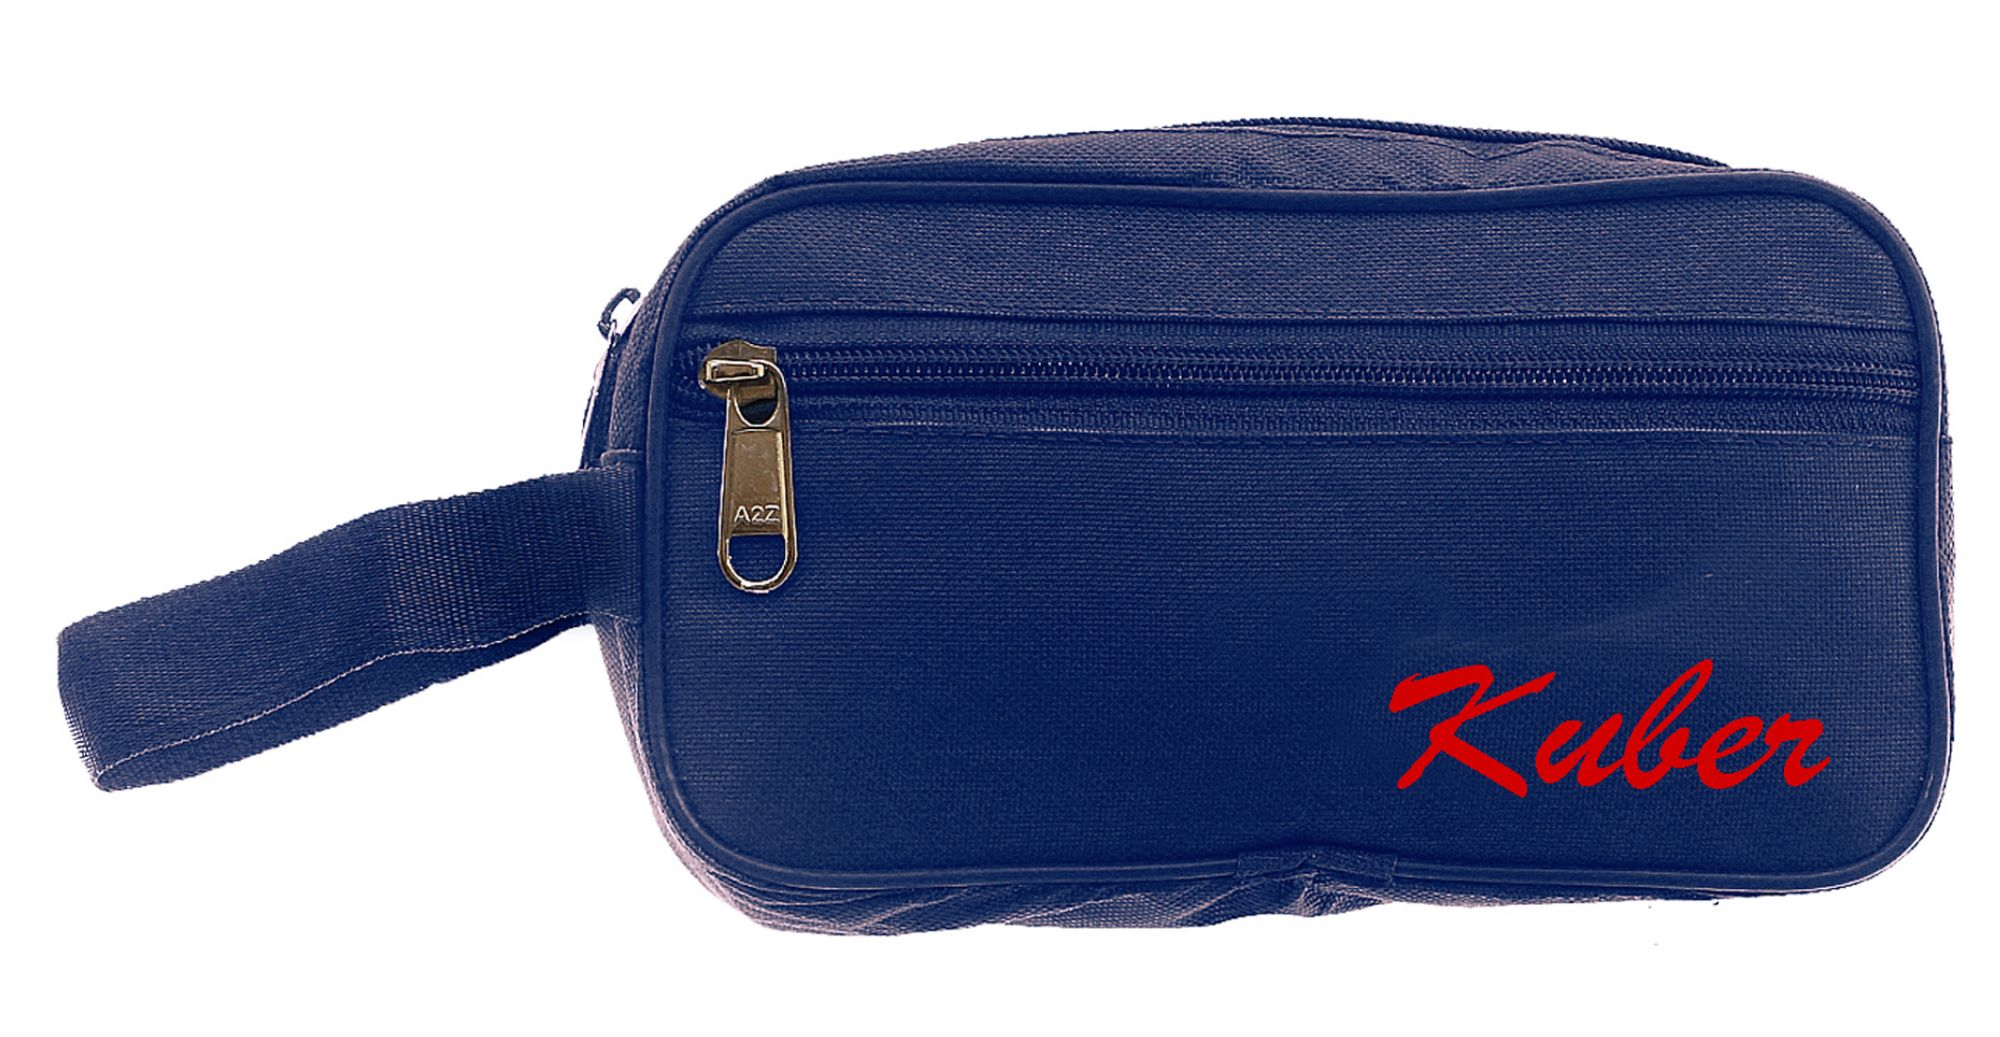 Kuber Industries 2 Pieces Multipurpose Canvas Toiletry Travel Shaving Kit,(Navy Blue & Brown) - CTKTC31471